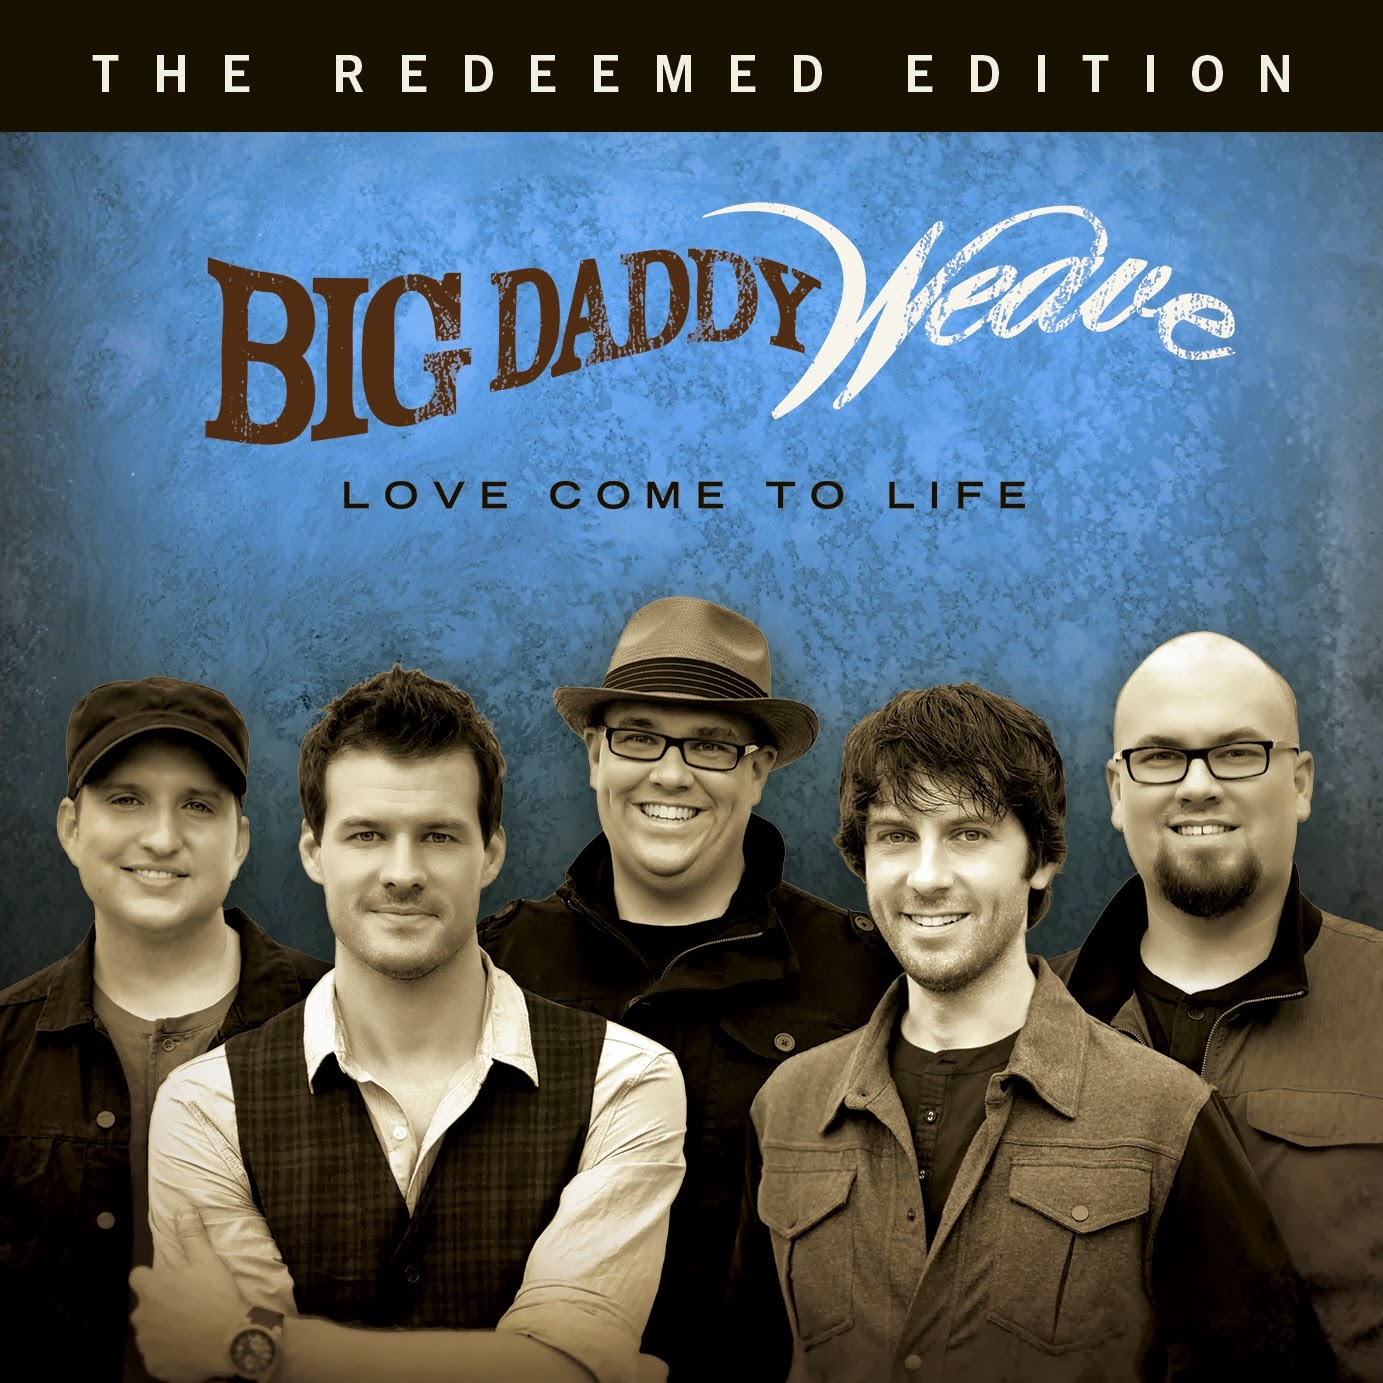 Big Daddy Weave - Love Come To Life (The Redeemed Edition) 2014 English Christian Album Download